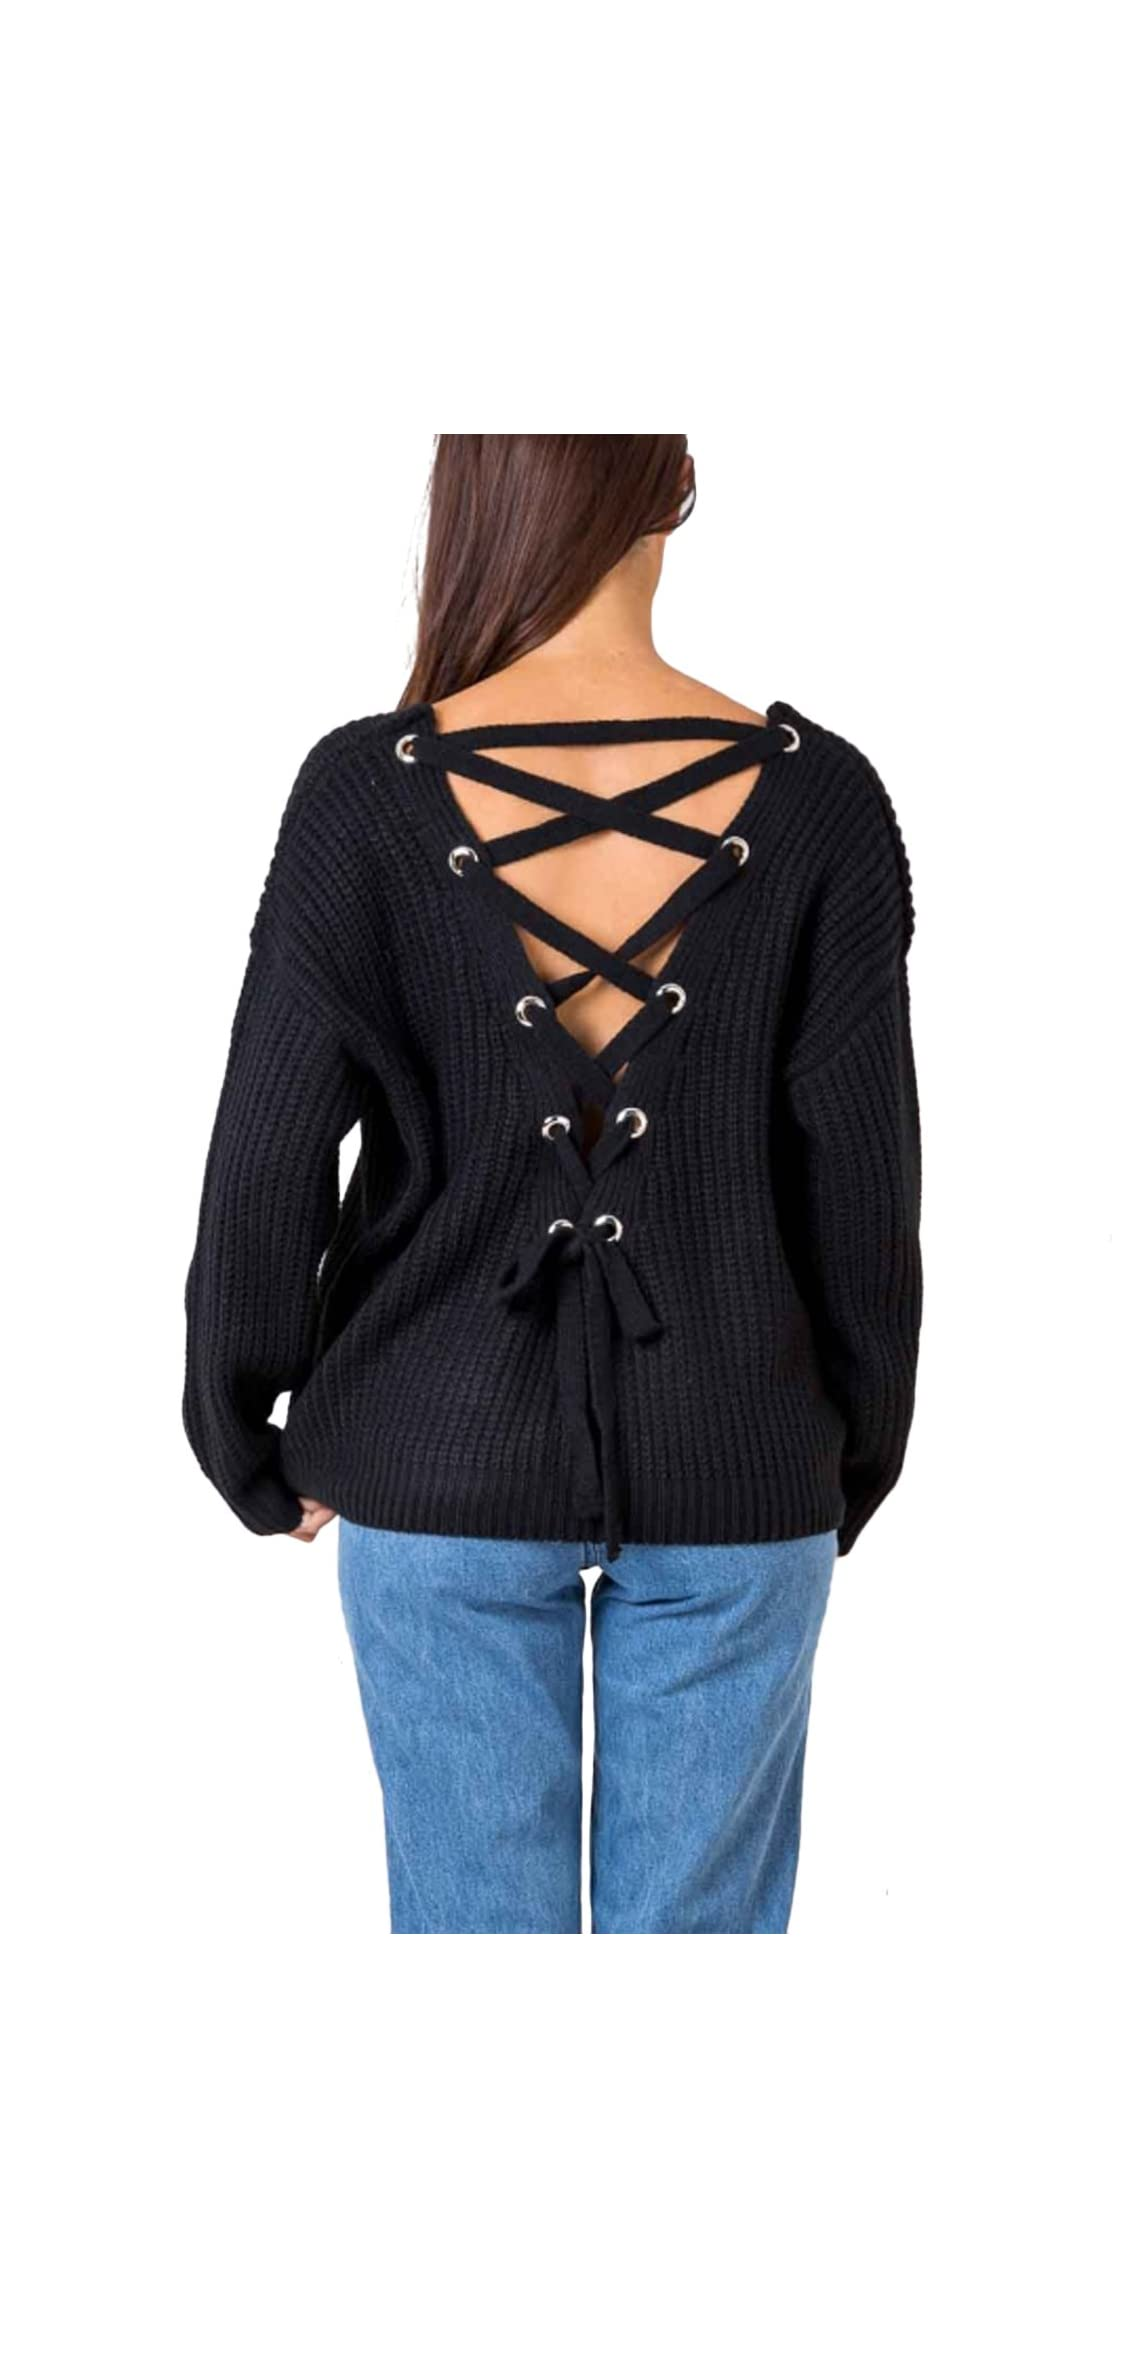 Simplee Women's Autumn Winter Warm Sexy V Neck Lace Up Backless